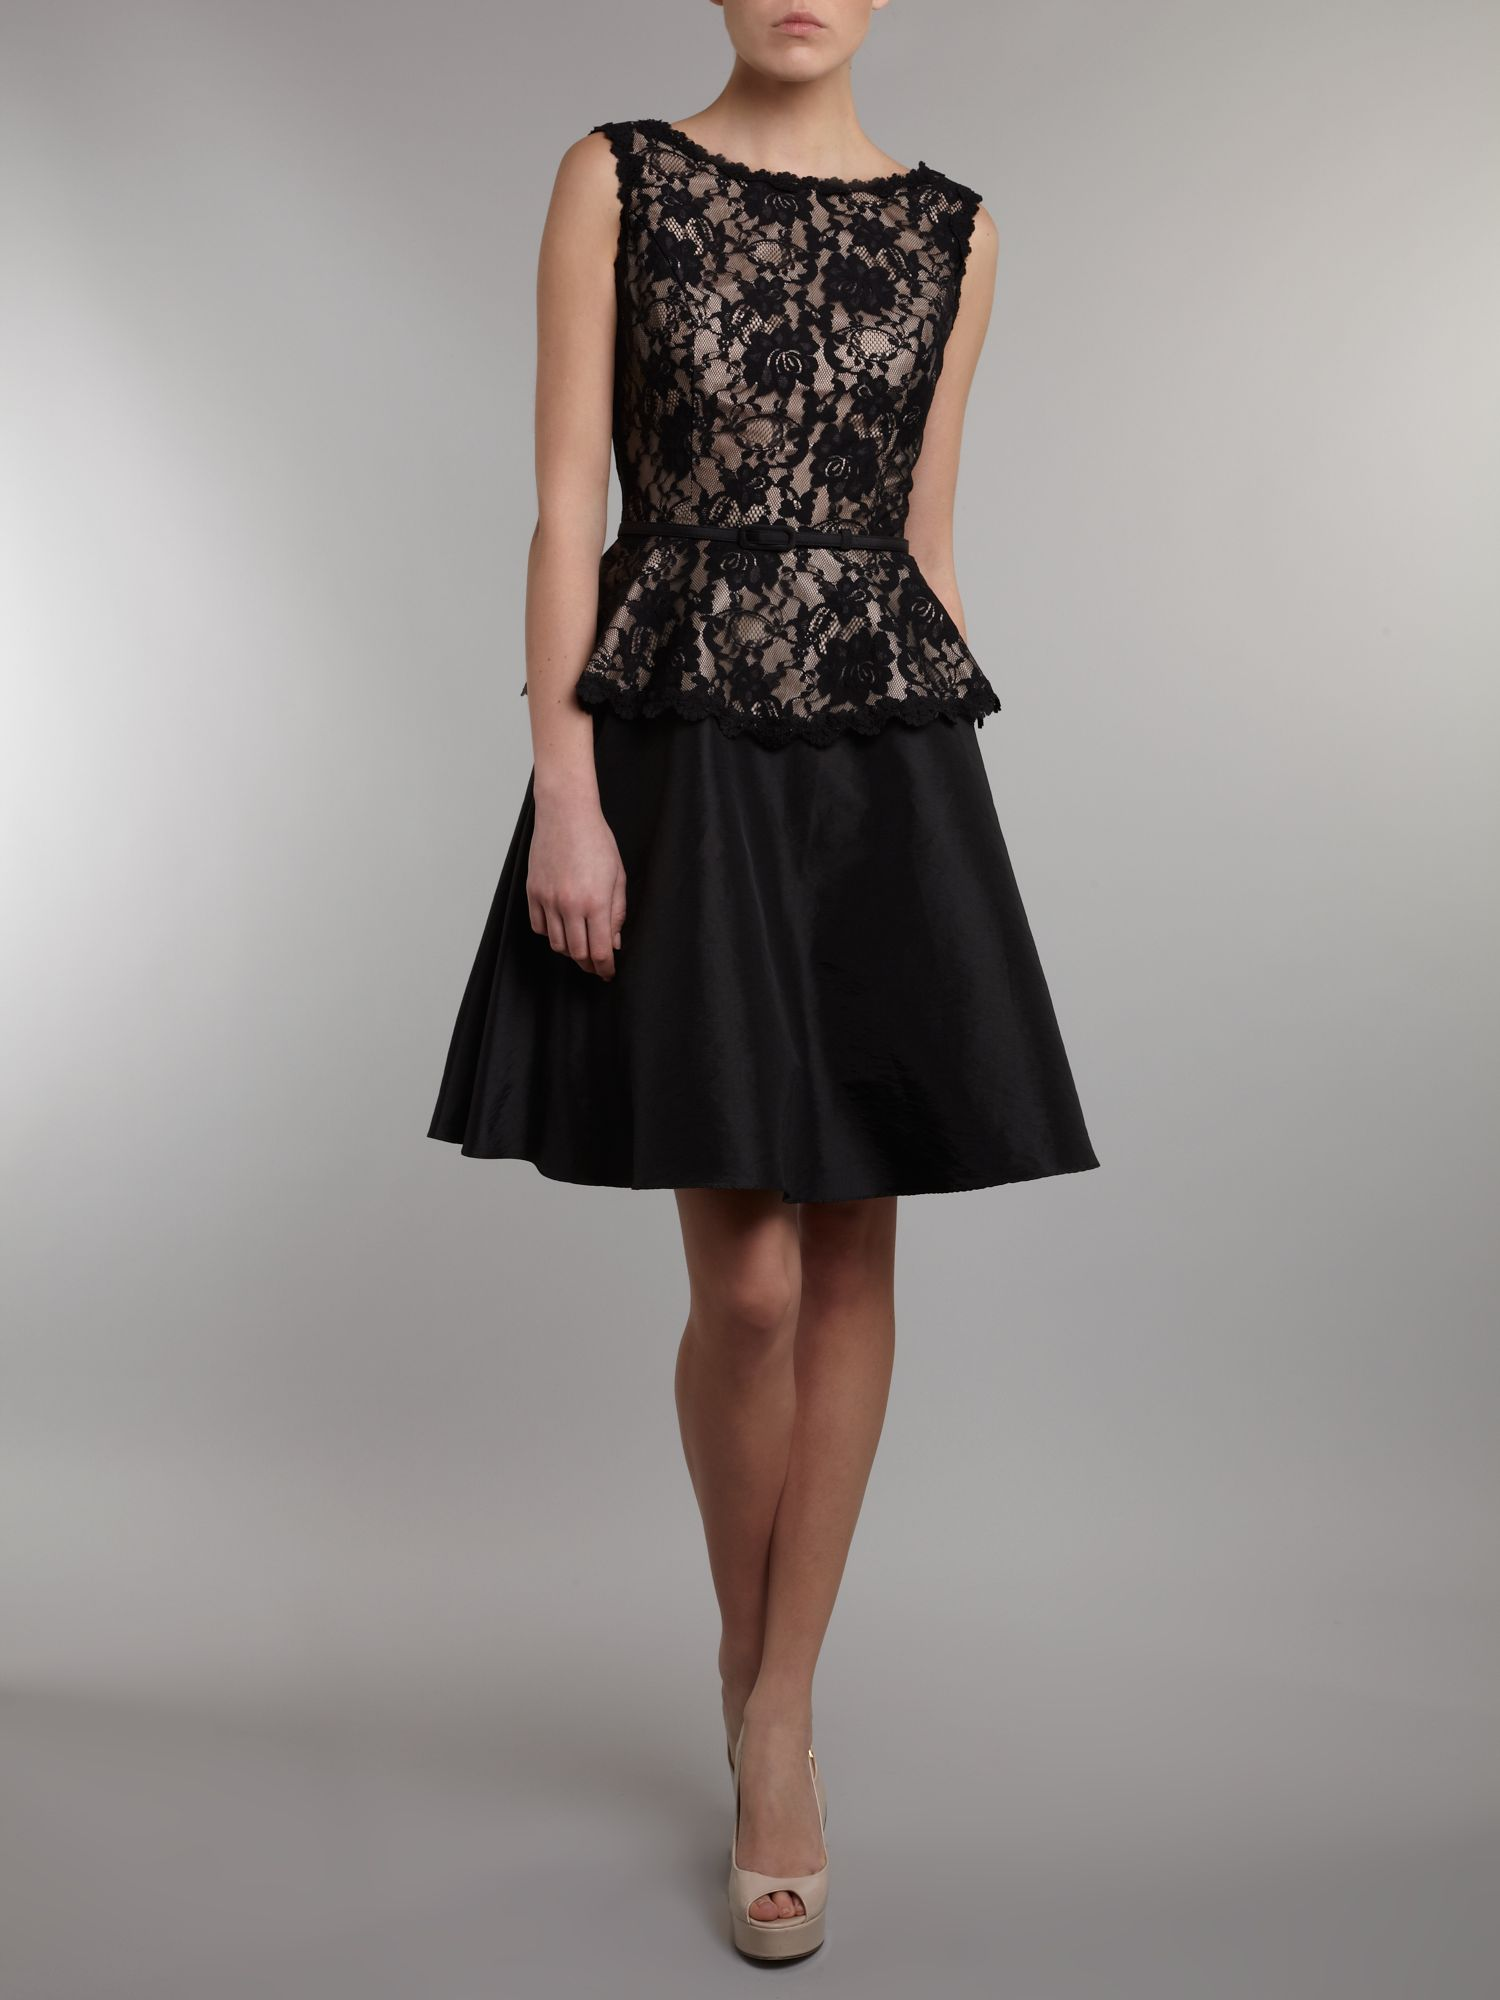 Lace dress with peplum